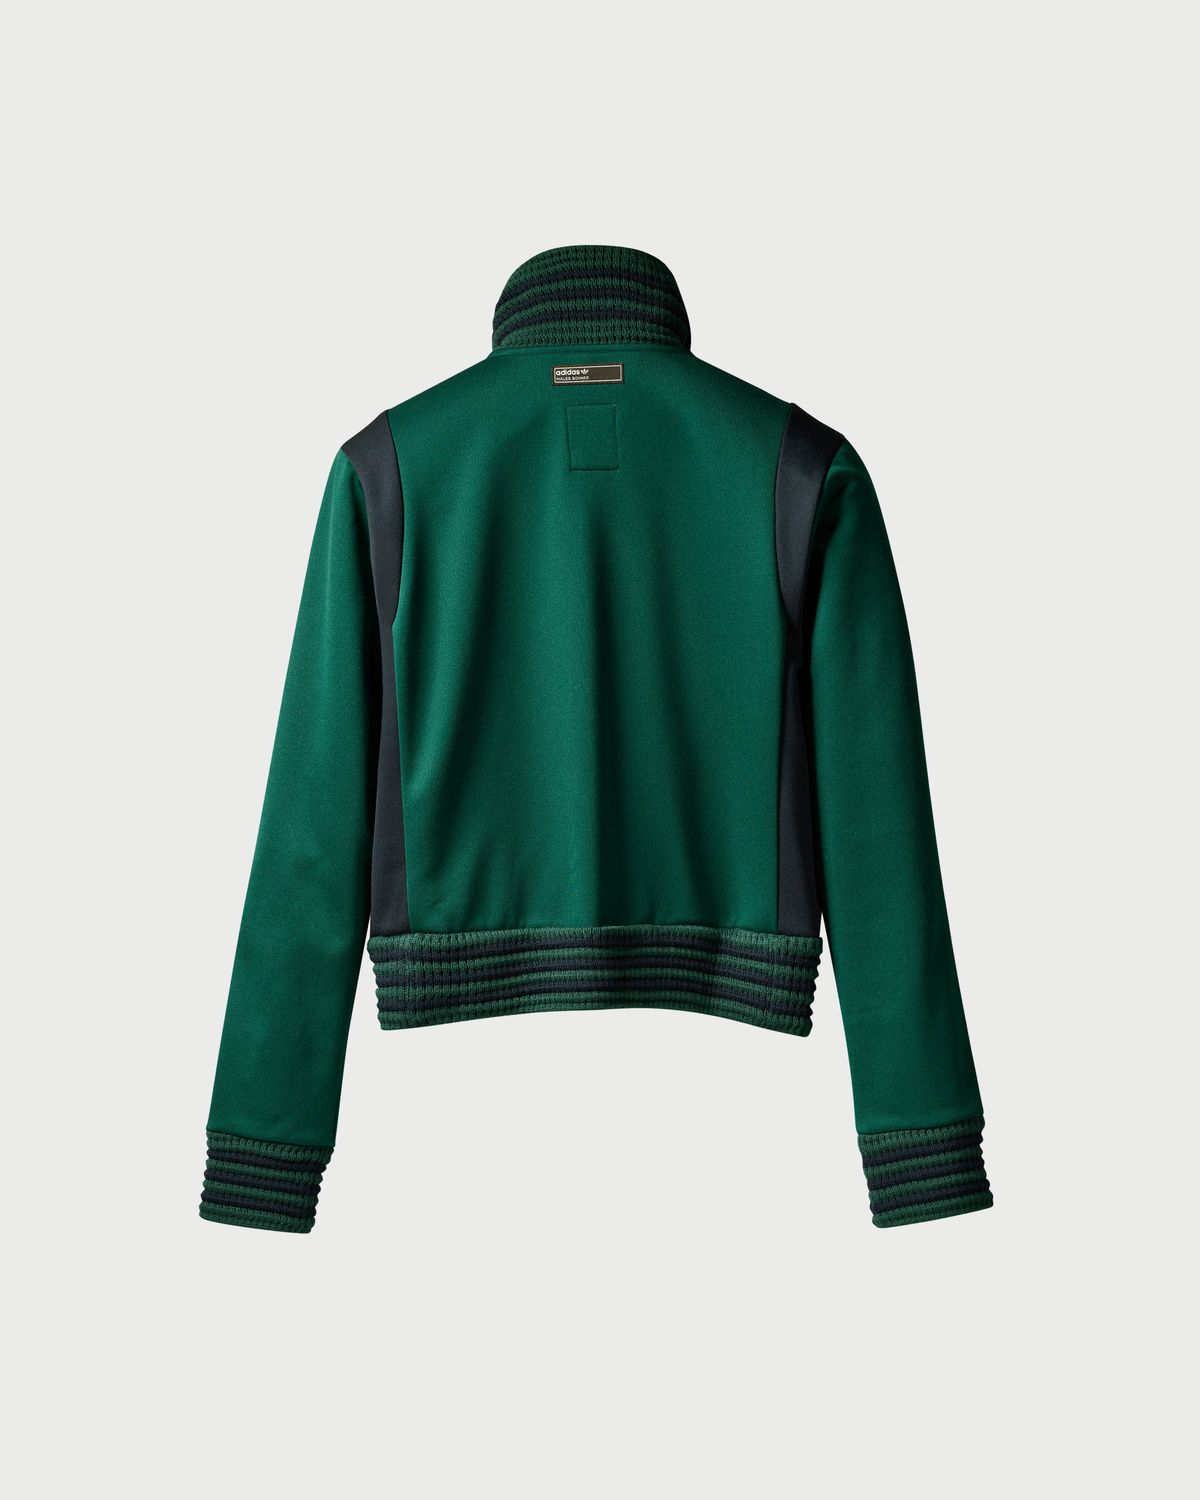 Adidas x Wales Bonner - Lovers Track Top Green - Image 2